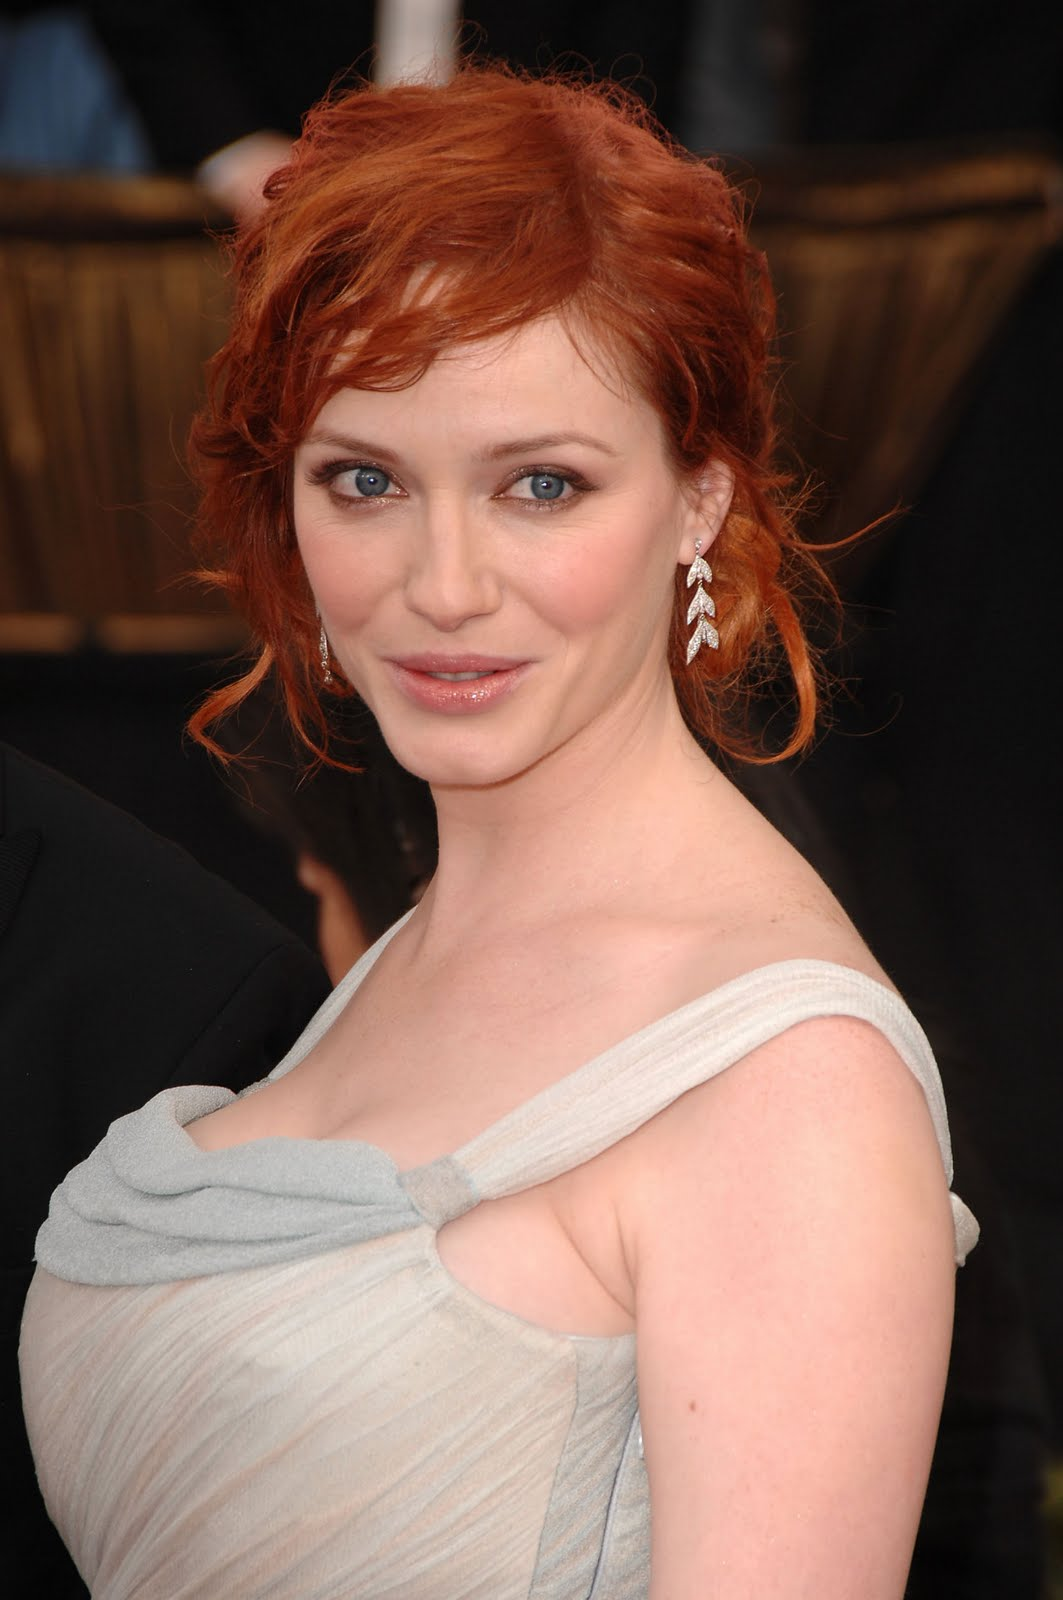 Miss Jamshedpur: Christina Hendricks Voted America's Best